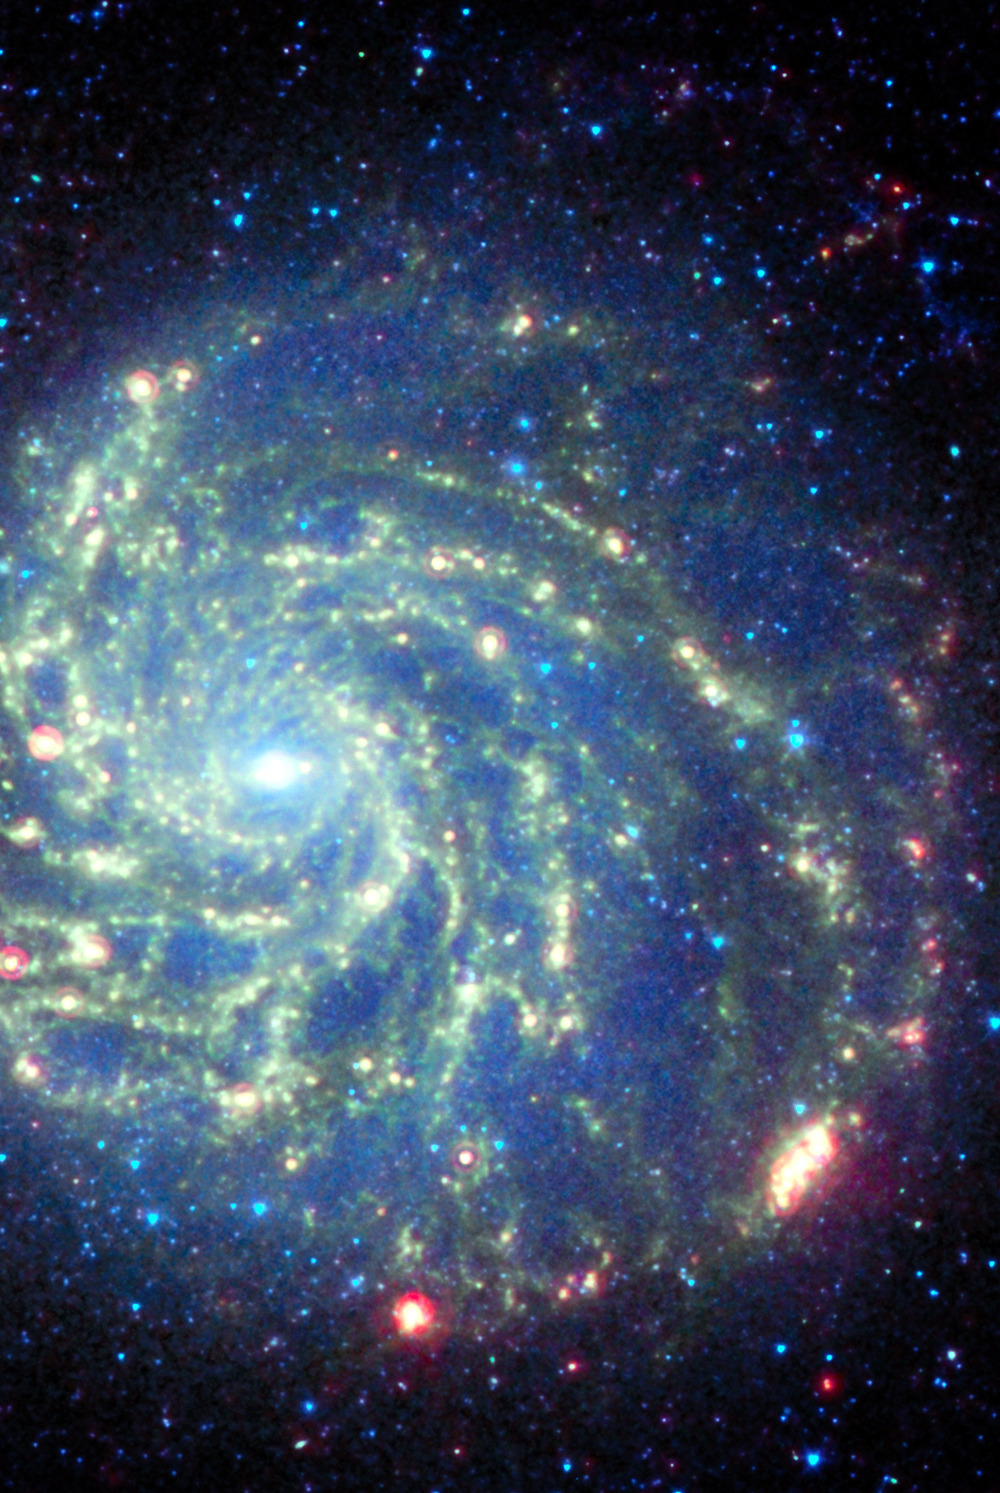 stellar-indulgence:  Spitzer Space Telescope's View of Galaxy Messier 101